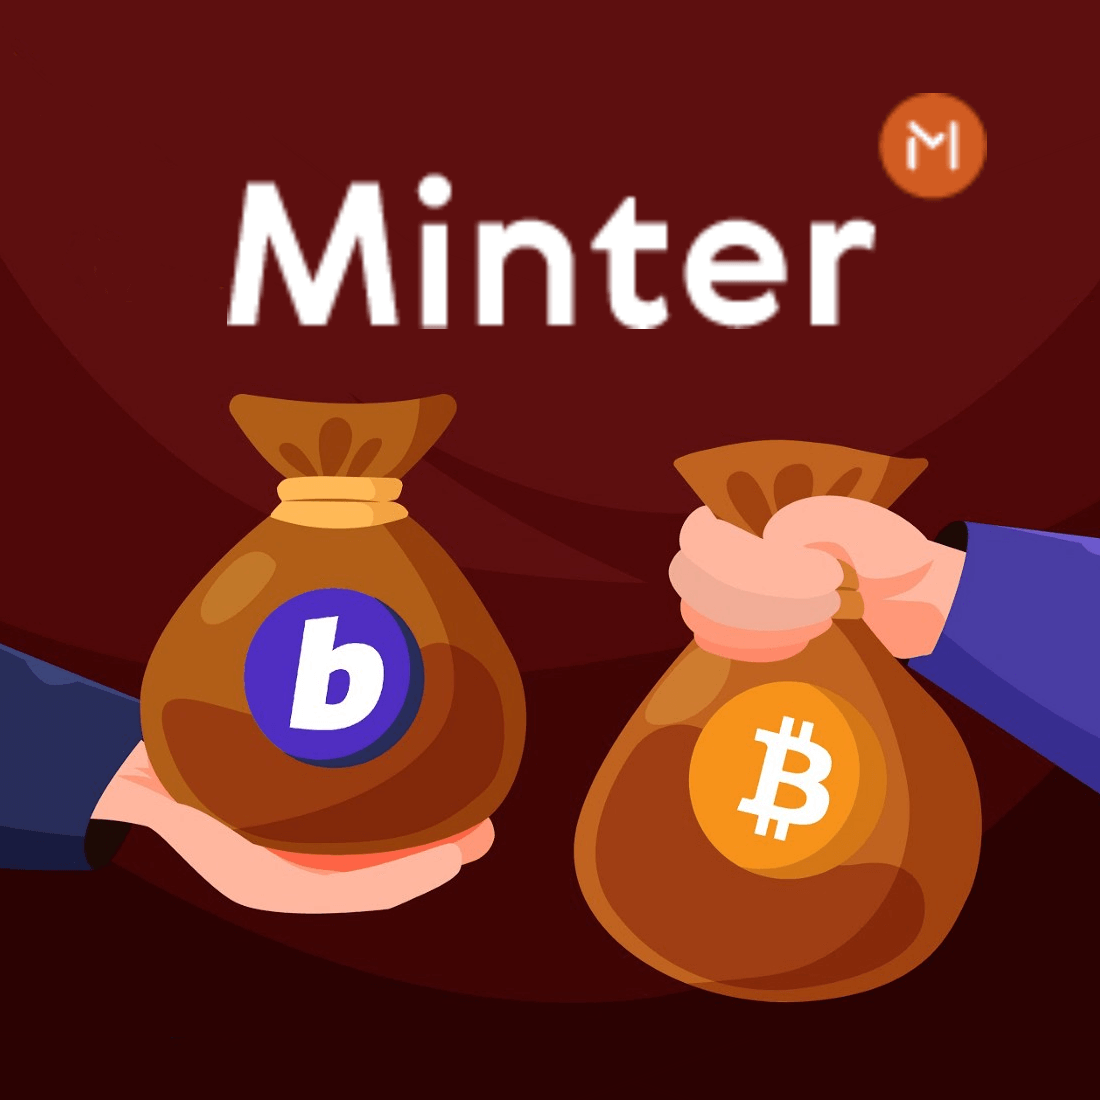 Coins on the Minter blockchain - a new highly profitable topic Coins on the Minter blockchain - a new highly profitable topic